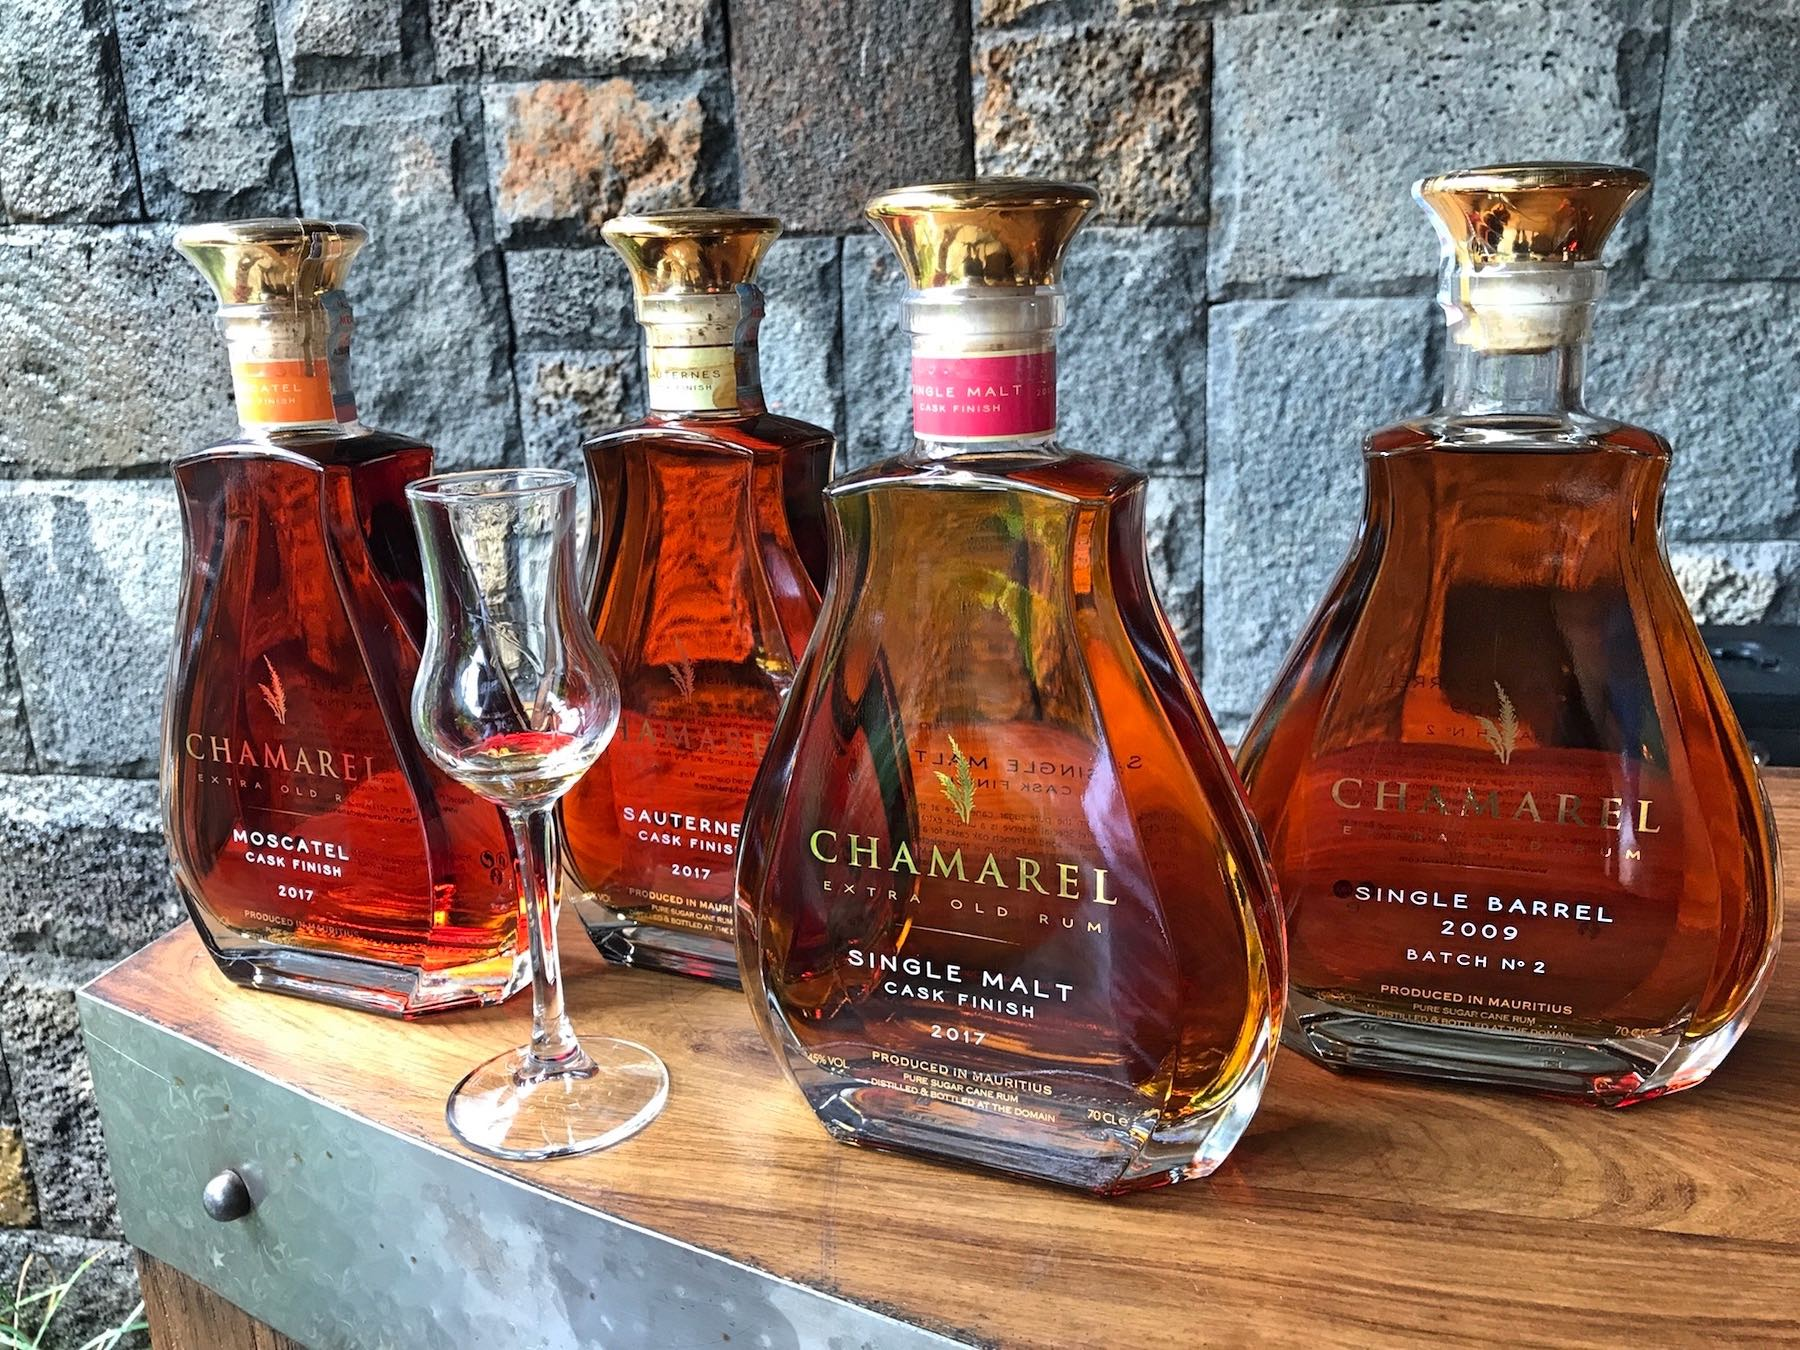 Chamarel Single Barrel Rum: Moscatel, Single Malt und Sauterness